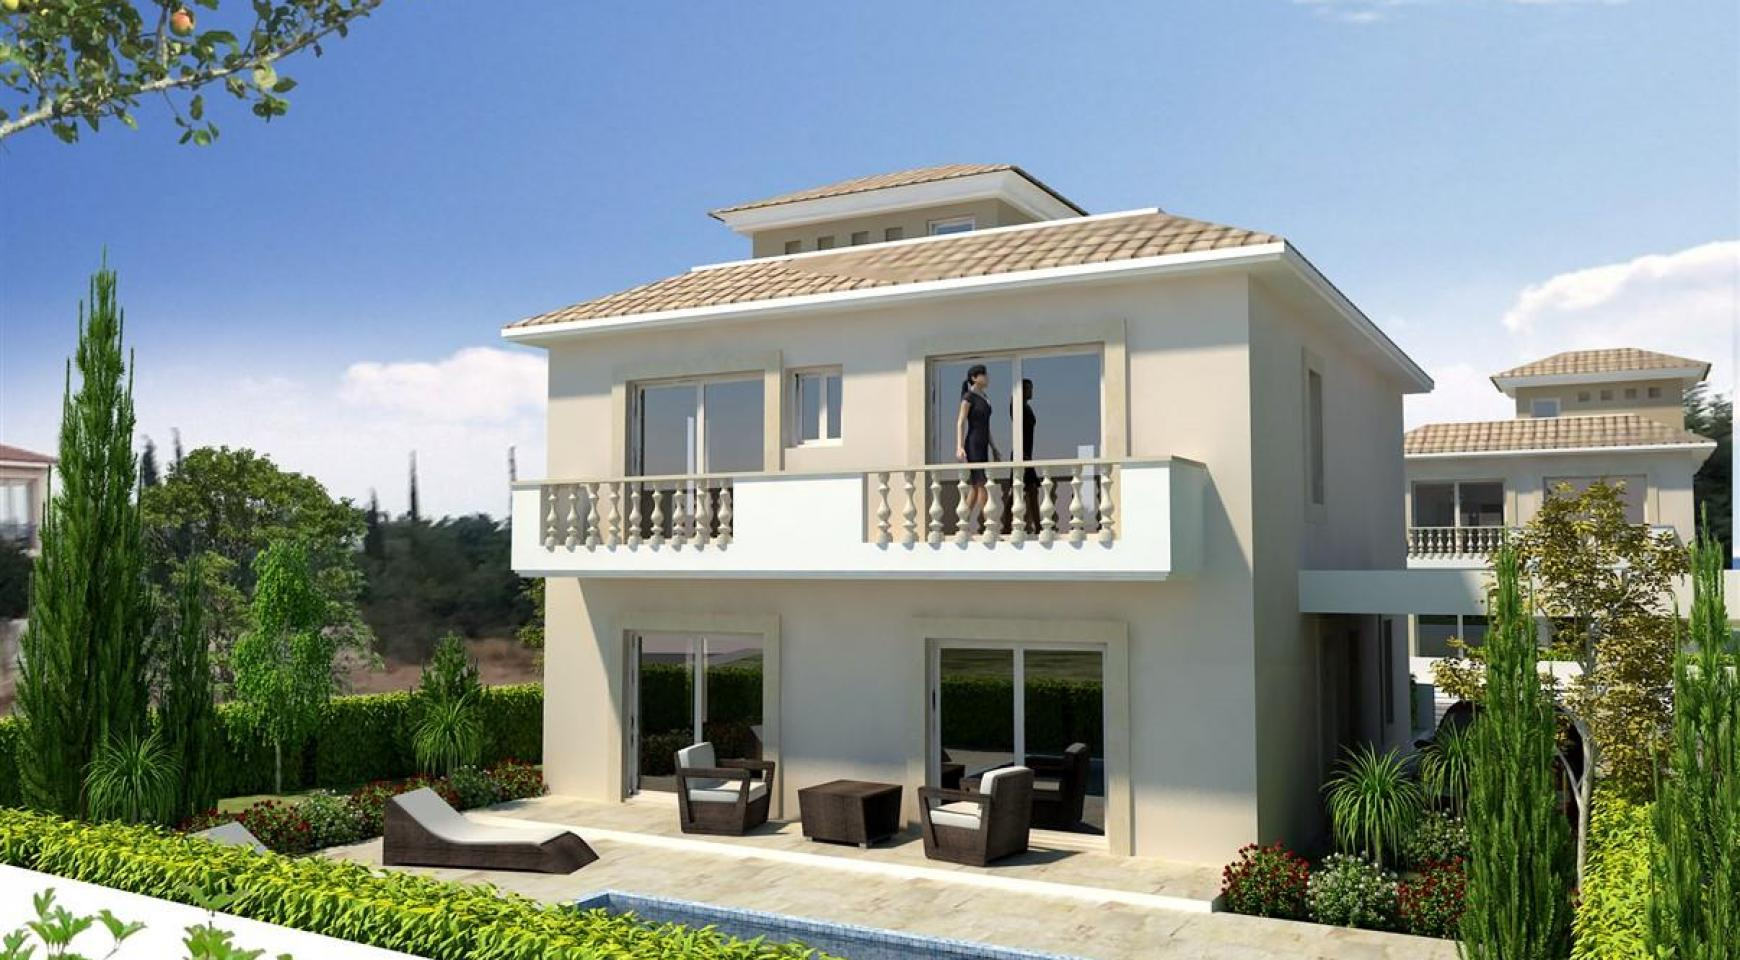 3 Bedroom Villa in a New Project - 9